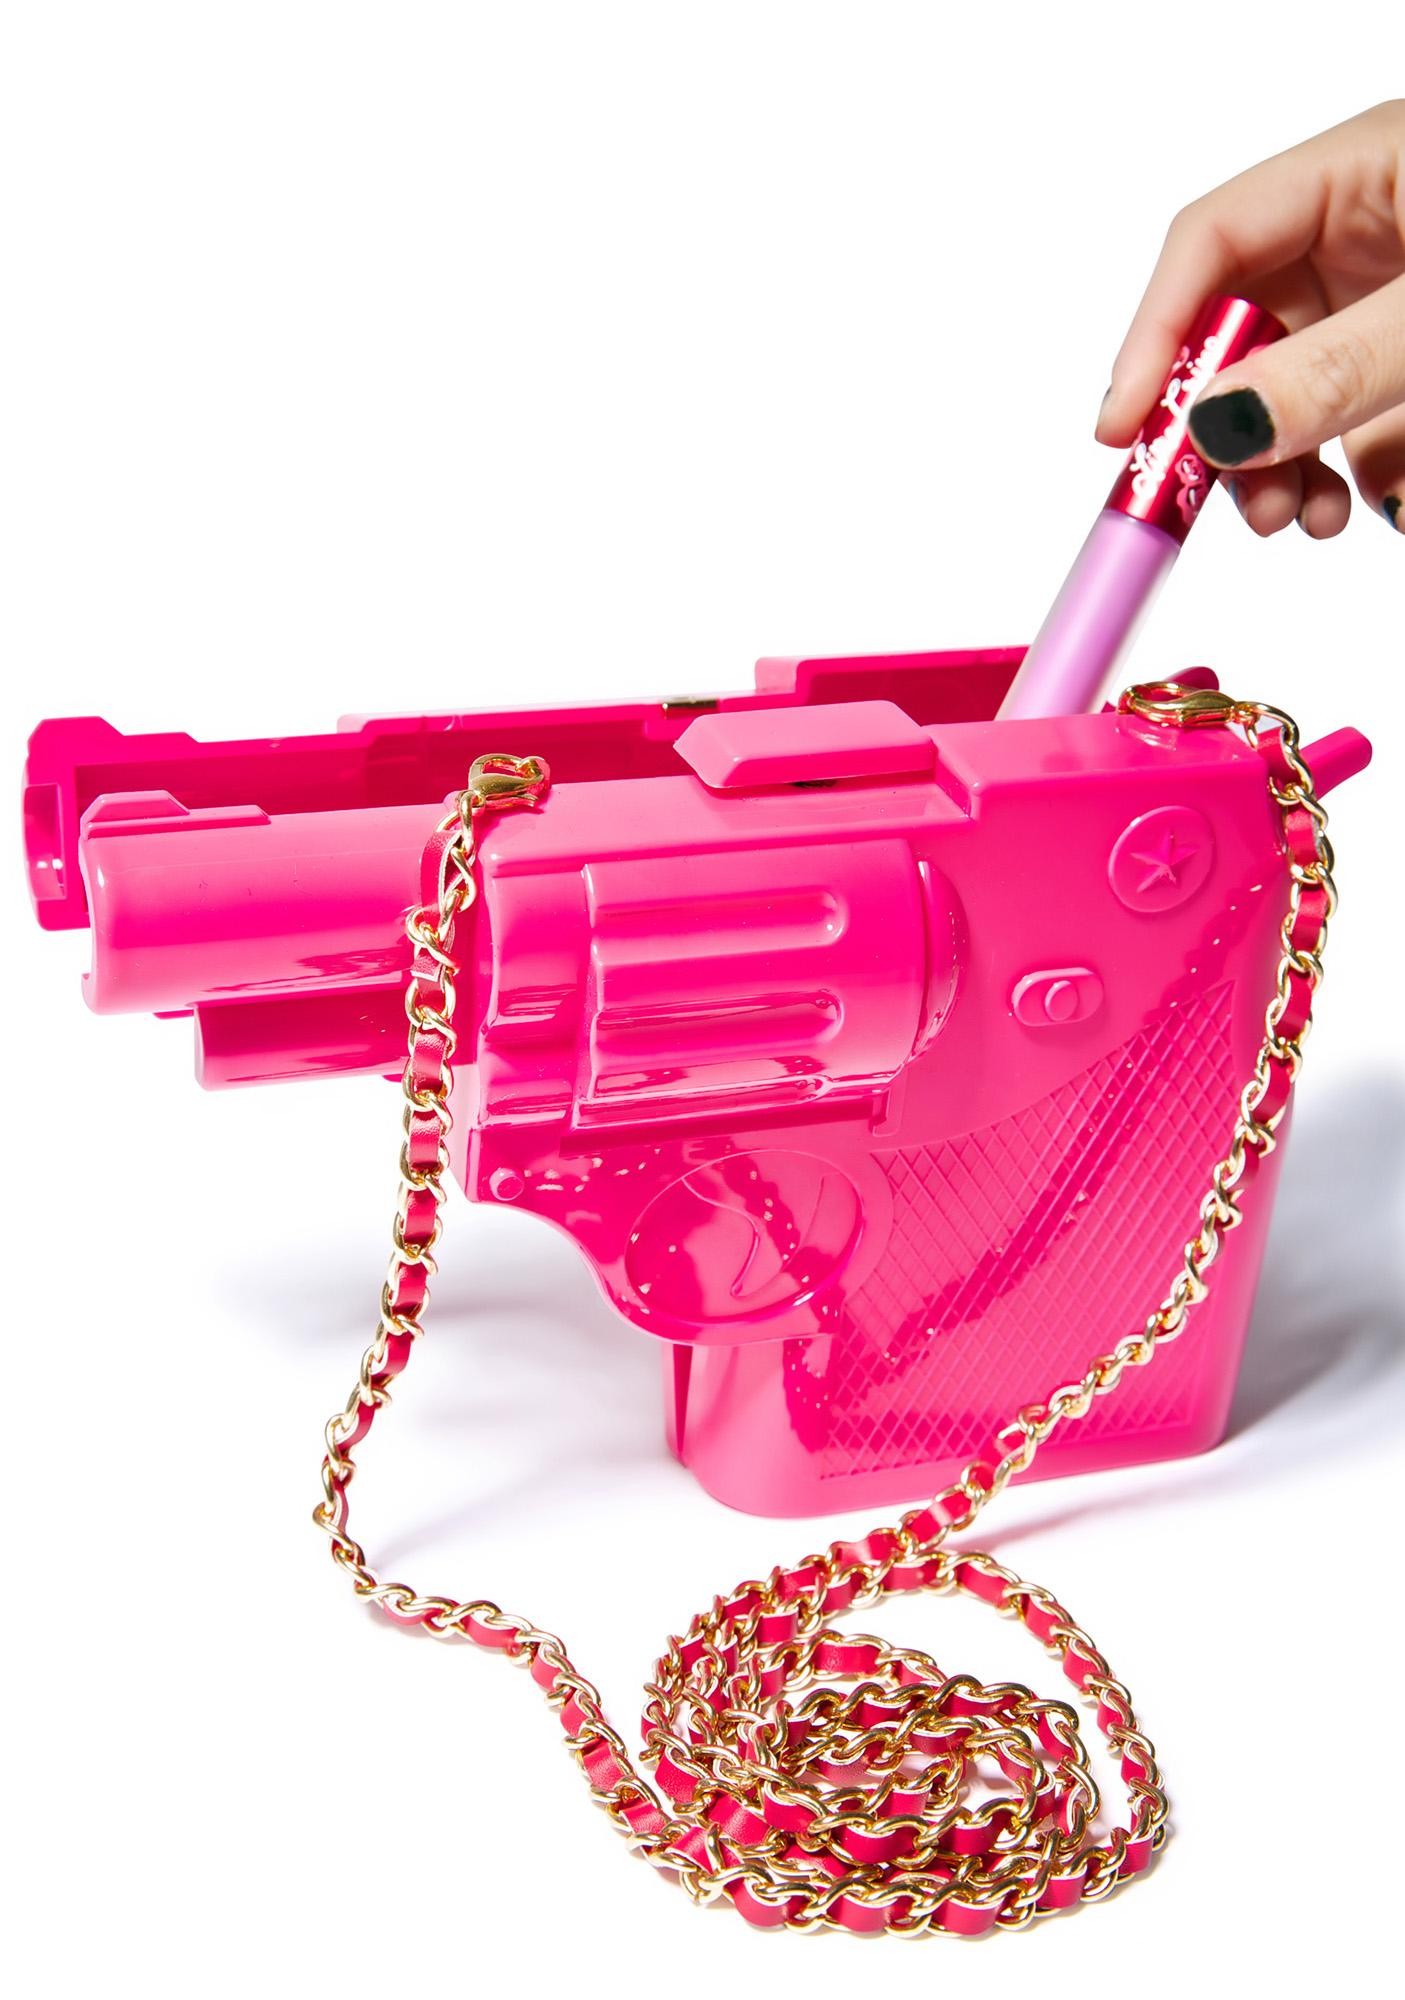 Nila Anthony Pretty Pistol Bag